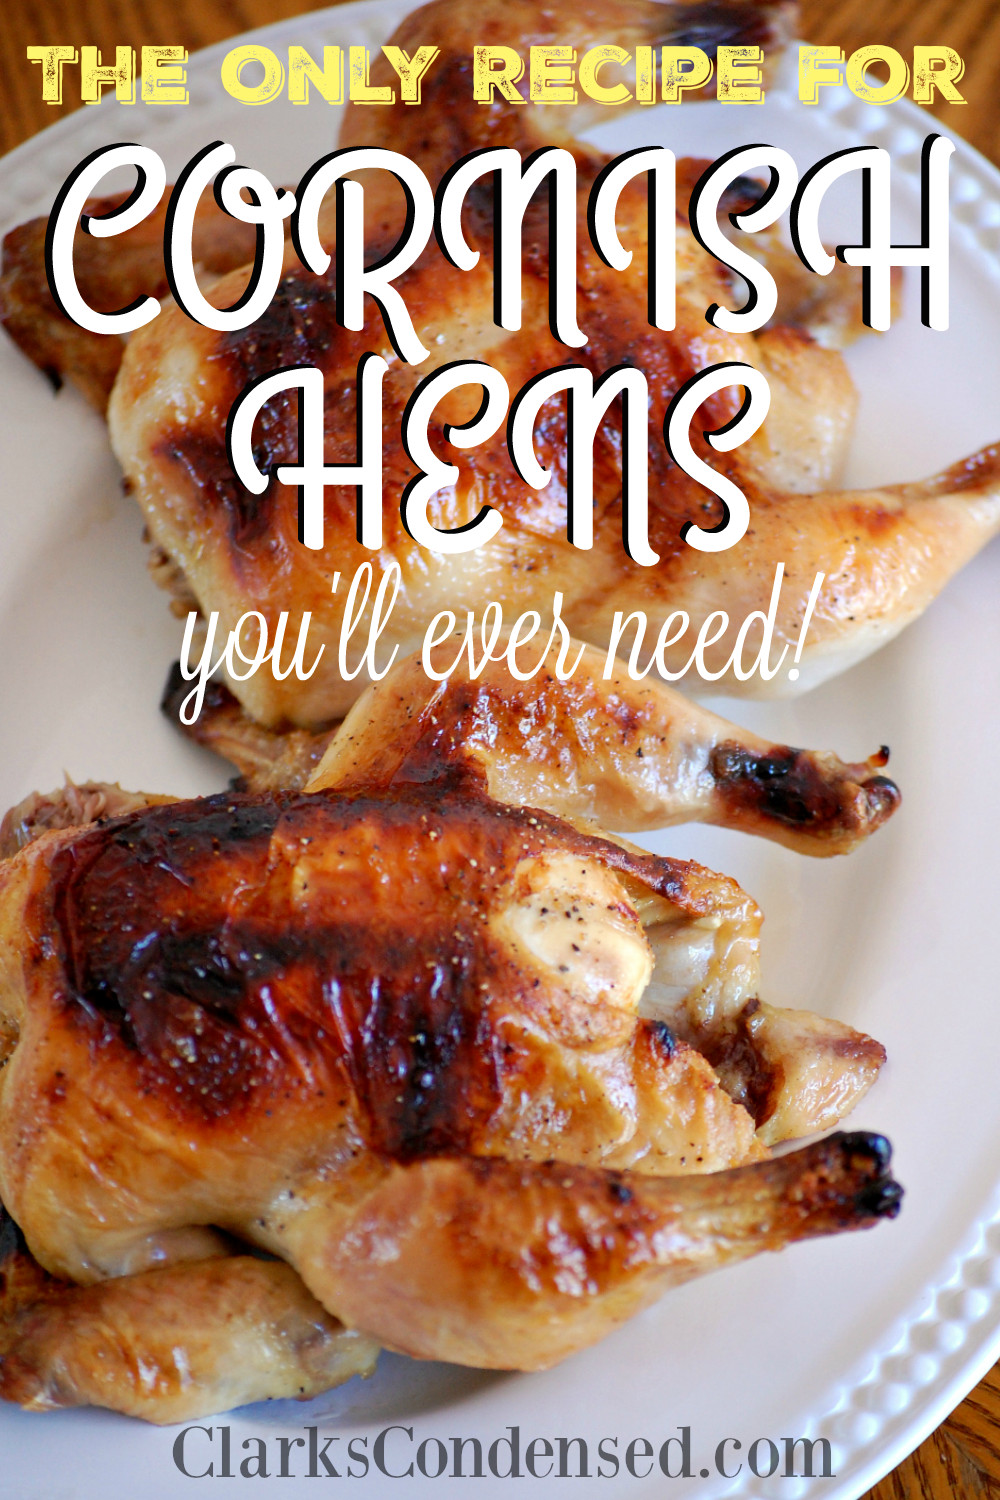 Recipes For Cornish Game Hens  The ly Recipe for Cornish Hens You Will Ever Need